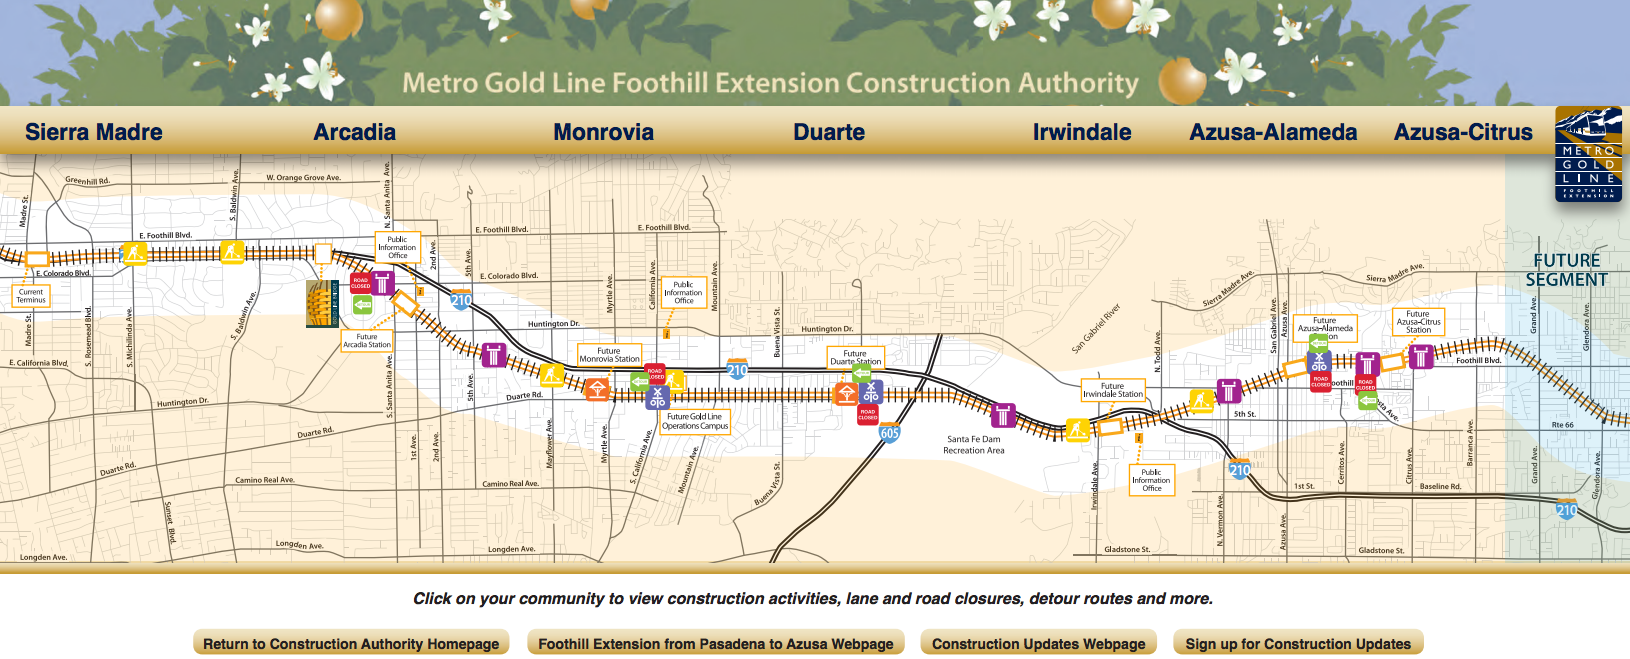 Click on the map above to visit the interactive construction map on the Construction Authority's website.